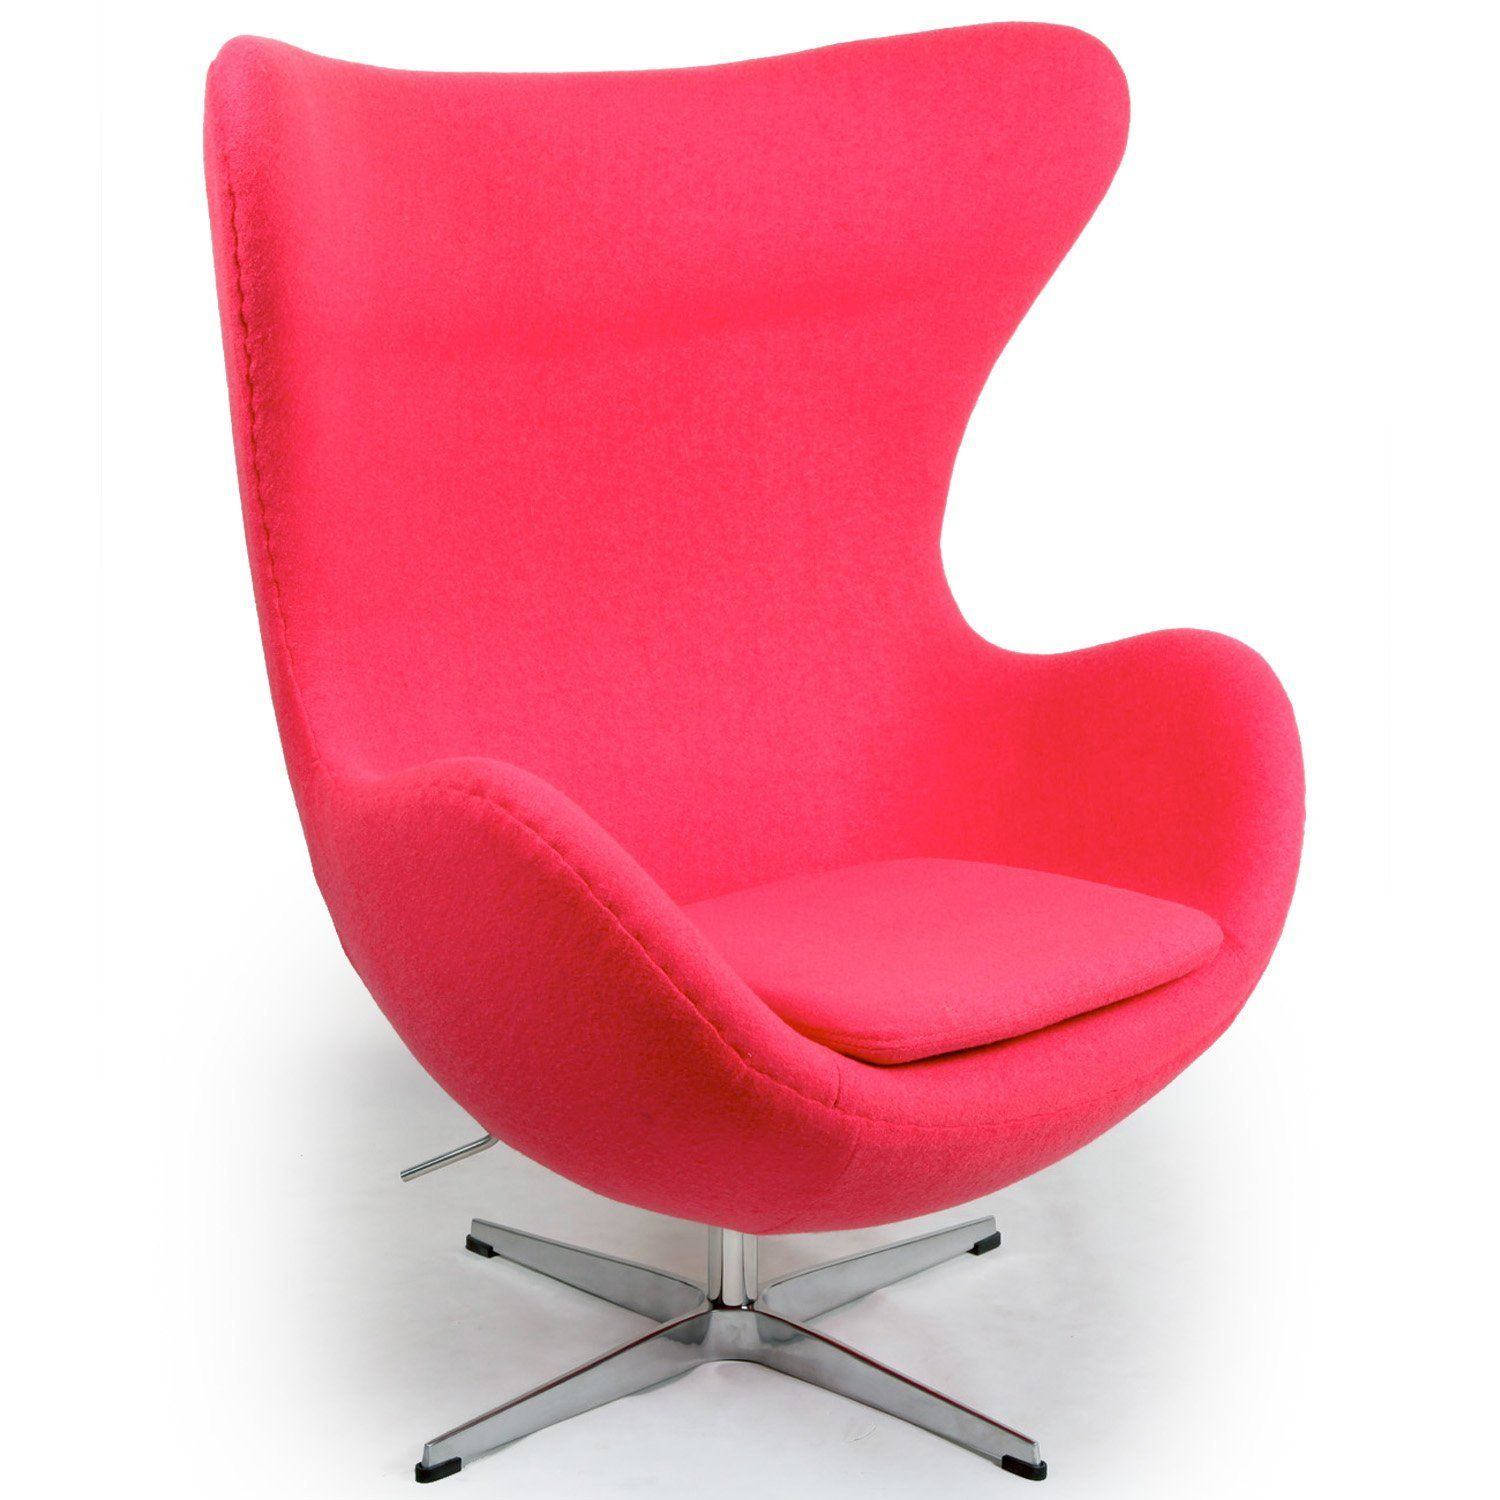 Great Funky Chairs For Teens | Funky Pink Chairs For Teen Girls: Kardiel Egg Chair ,